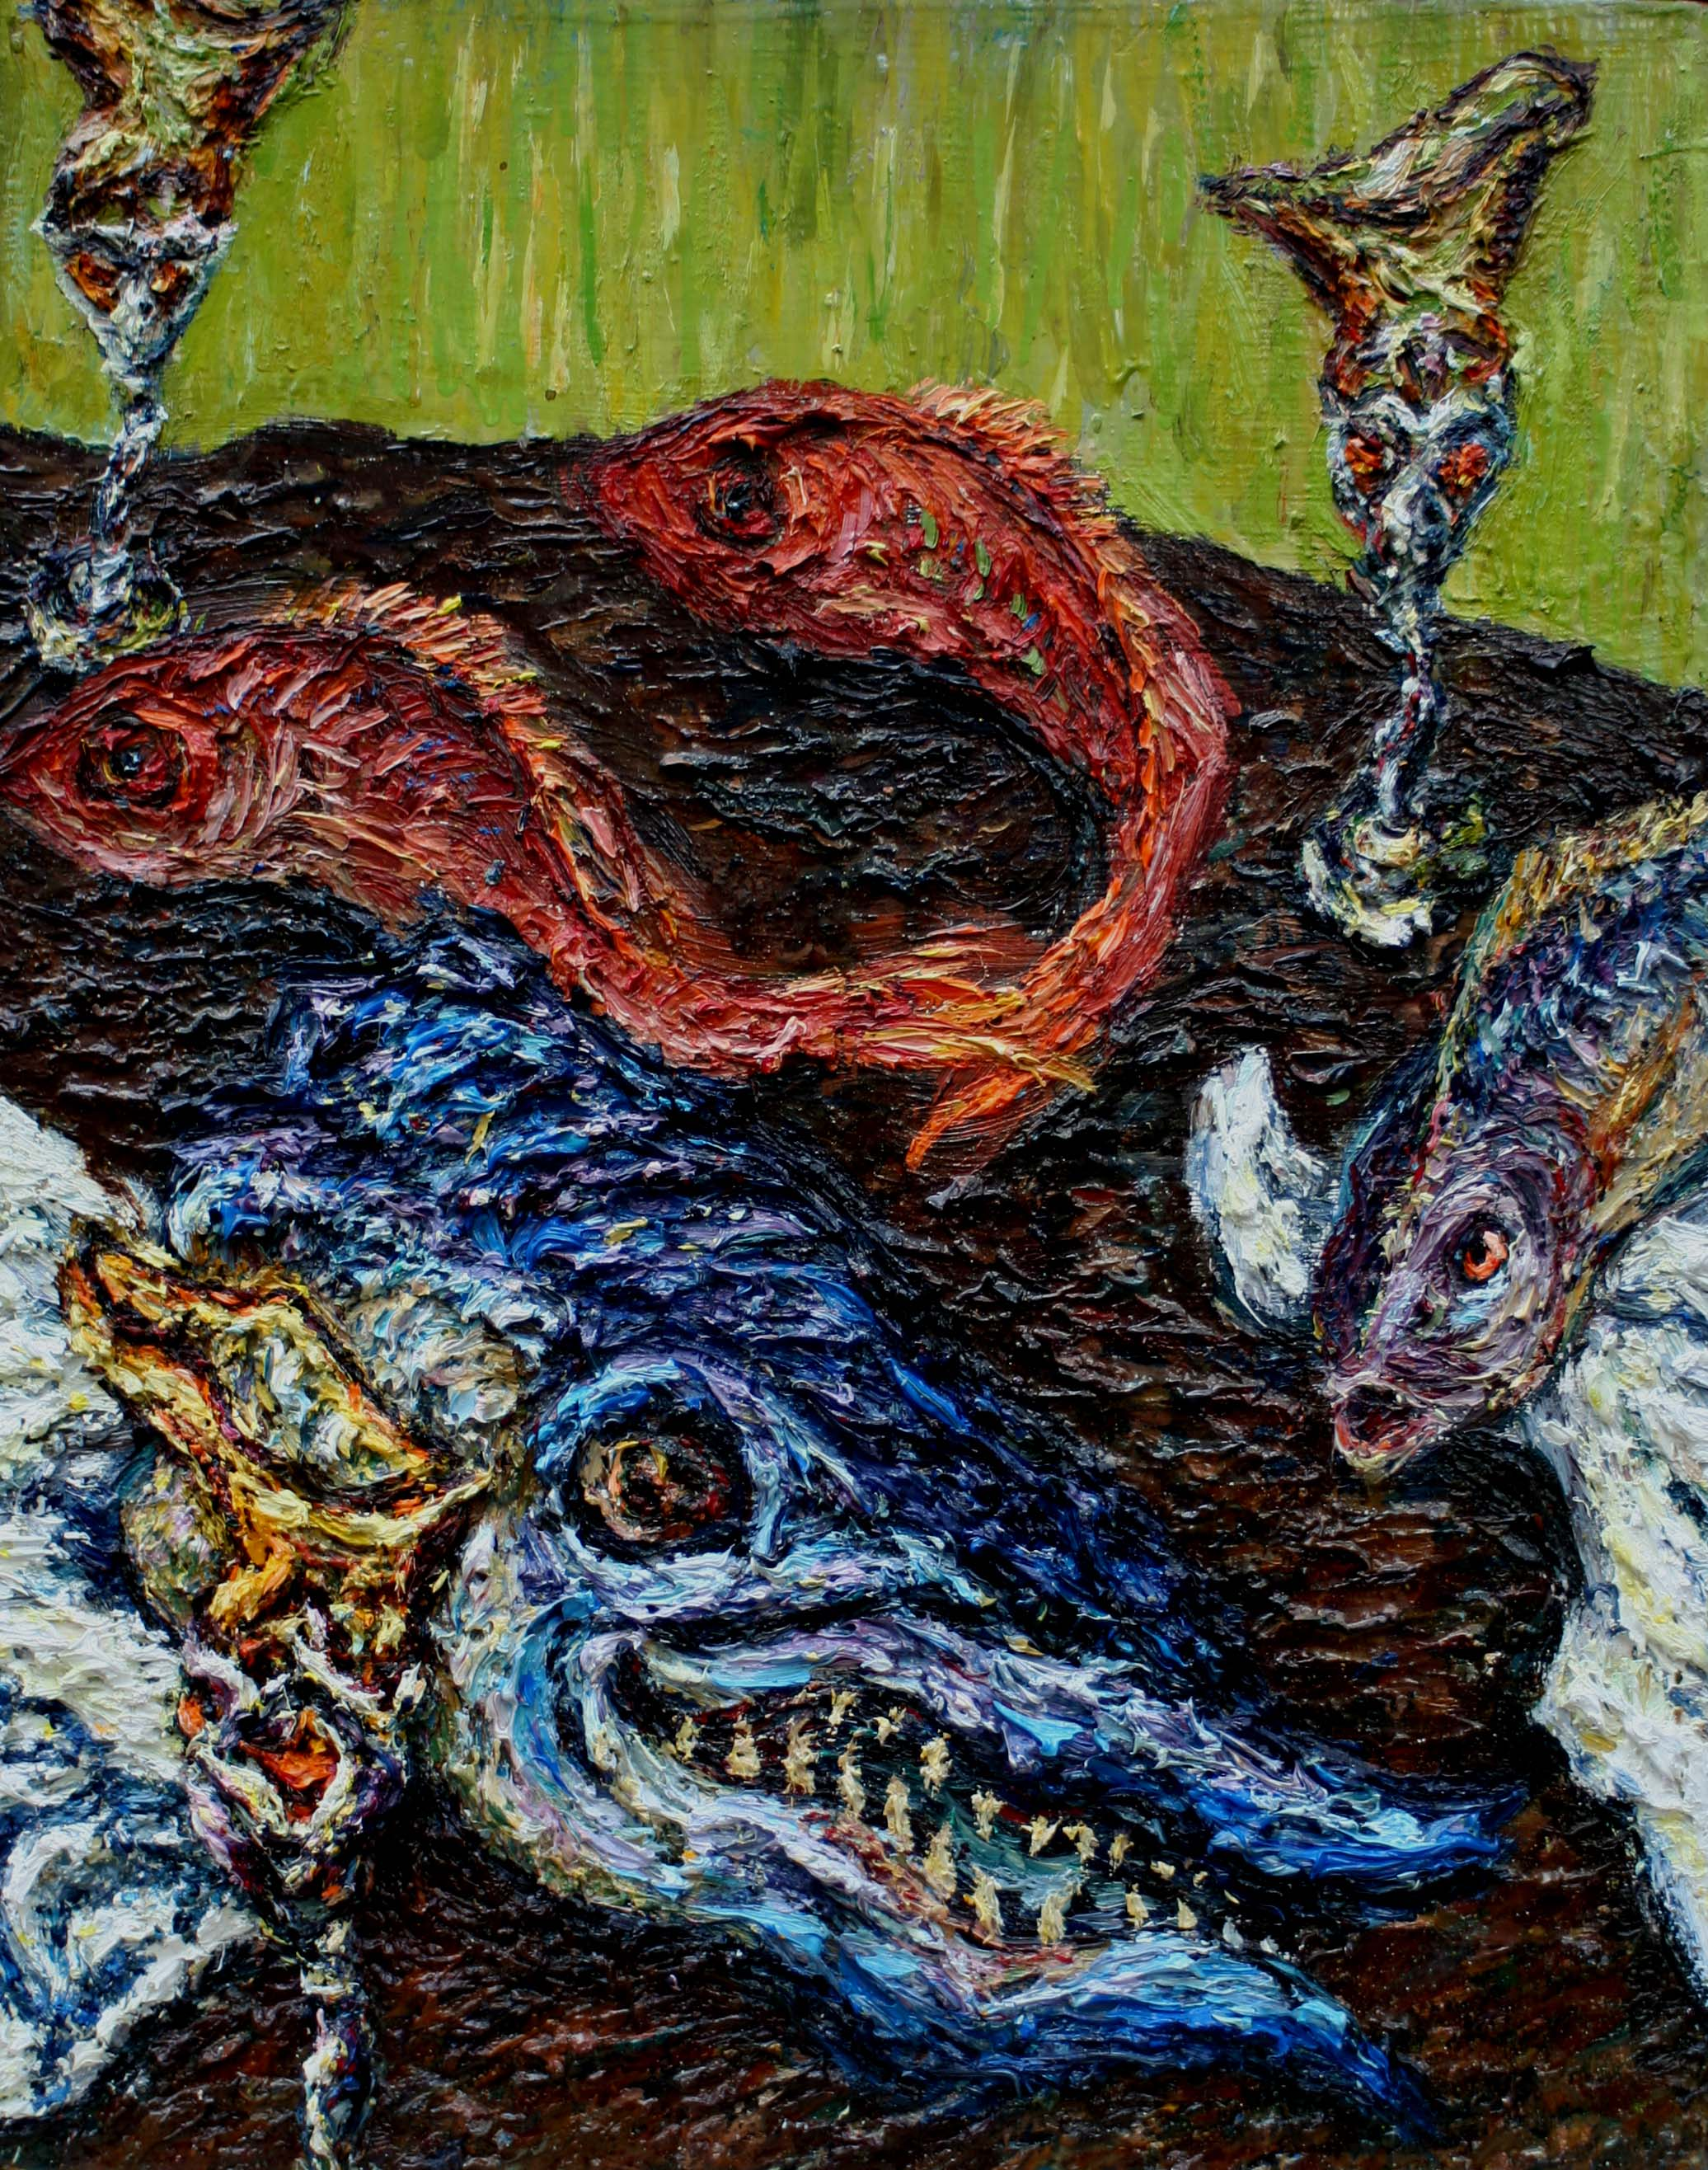 08-Dining-Table-16×12-oil-on-canvas-1994.